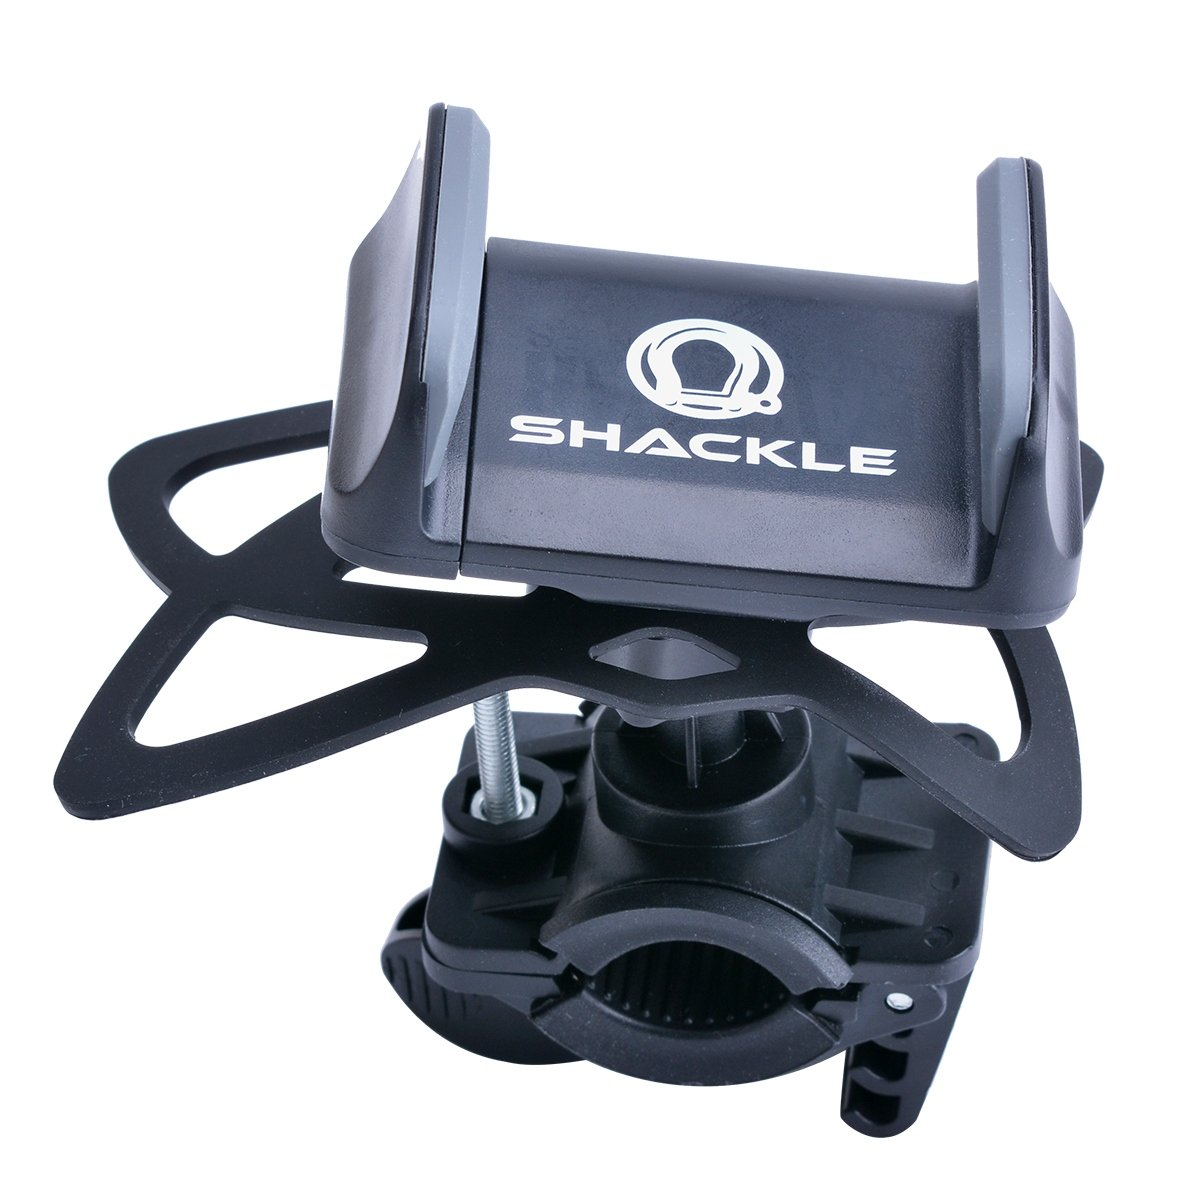 Cell Phone Bike Mount, Shackle Universal Cradle Clamp for iOS Android Smartphone GPS other Devices, 360 Degrees Rotatable, 3xSilicon Straps